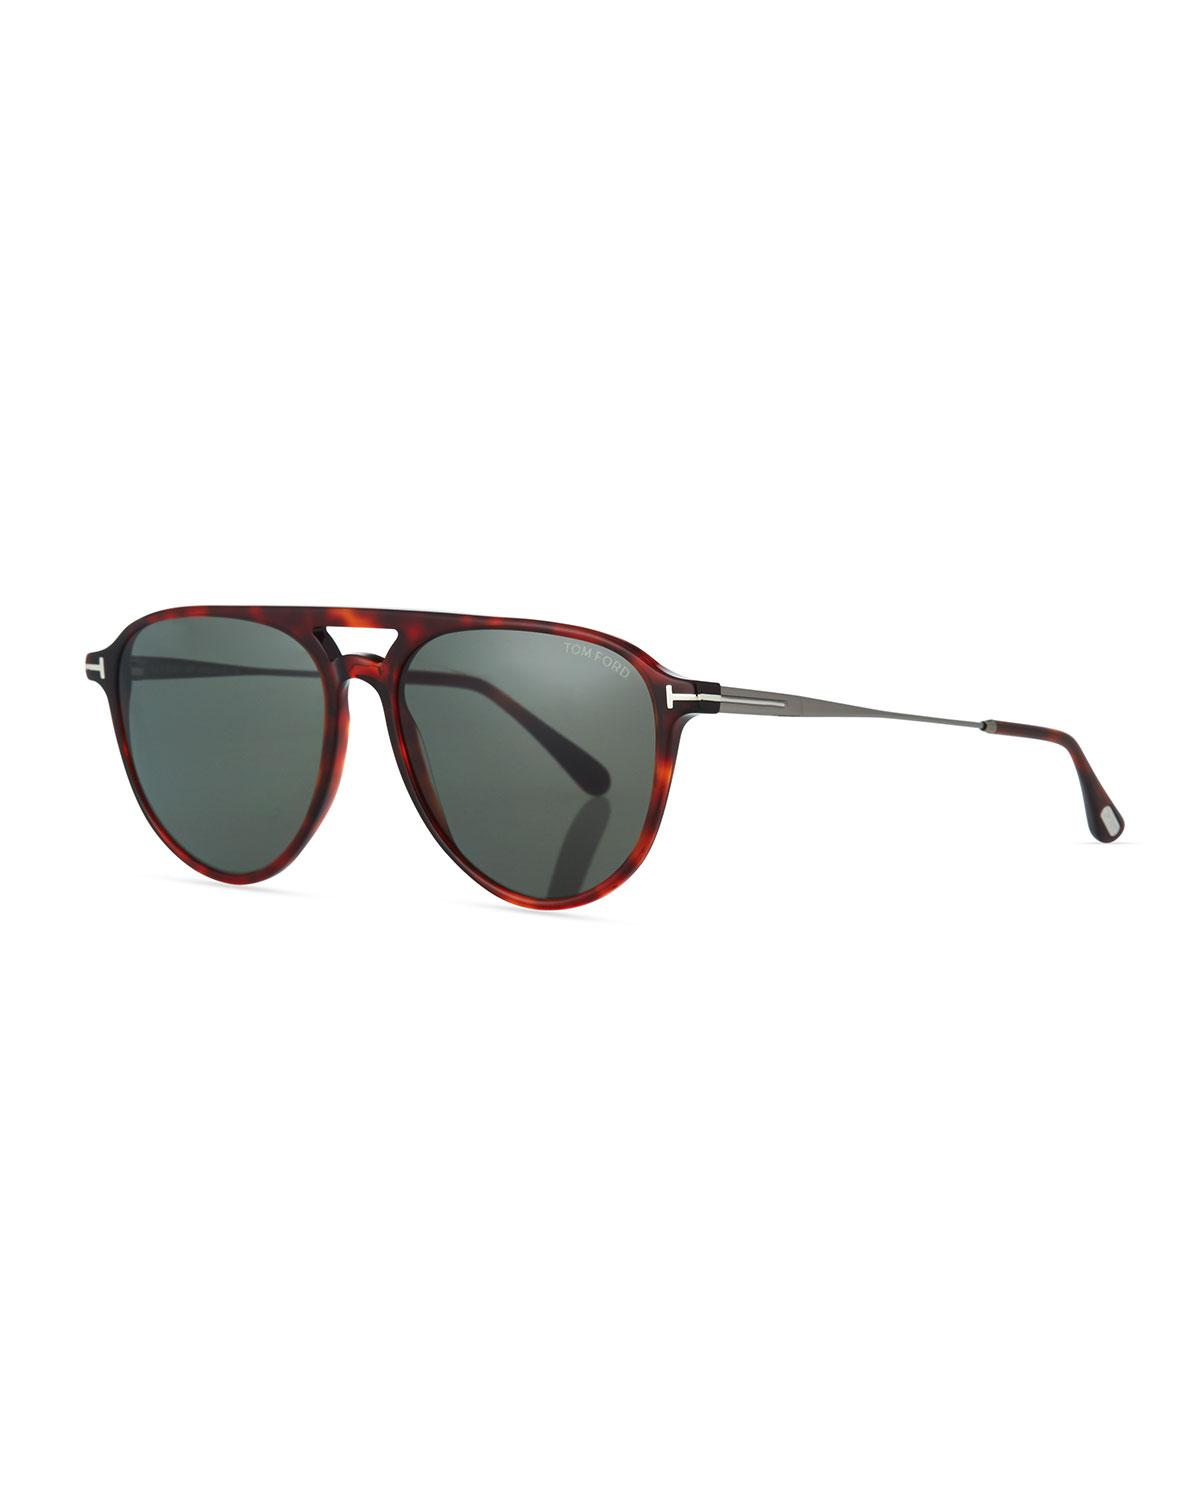 bb4607a84560 Lyst - Tom Ford Carlo Acetate-and-metal Aviator Sunglasses in ...